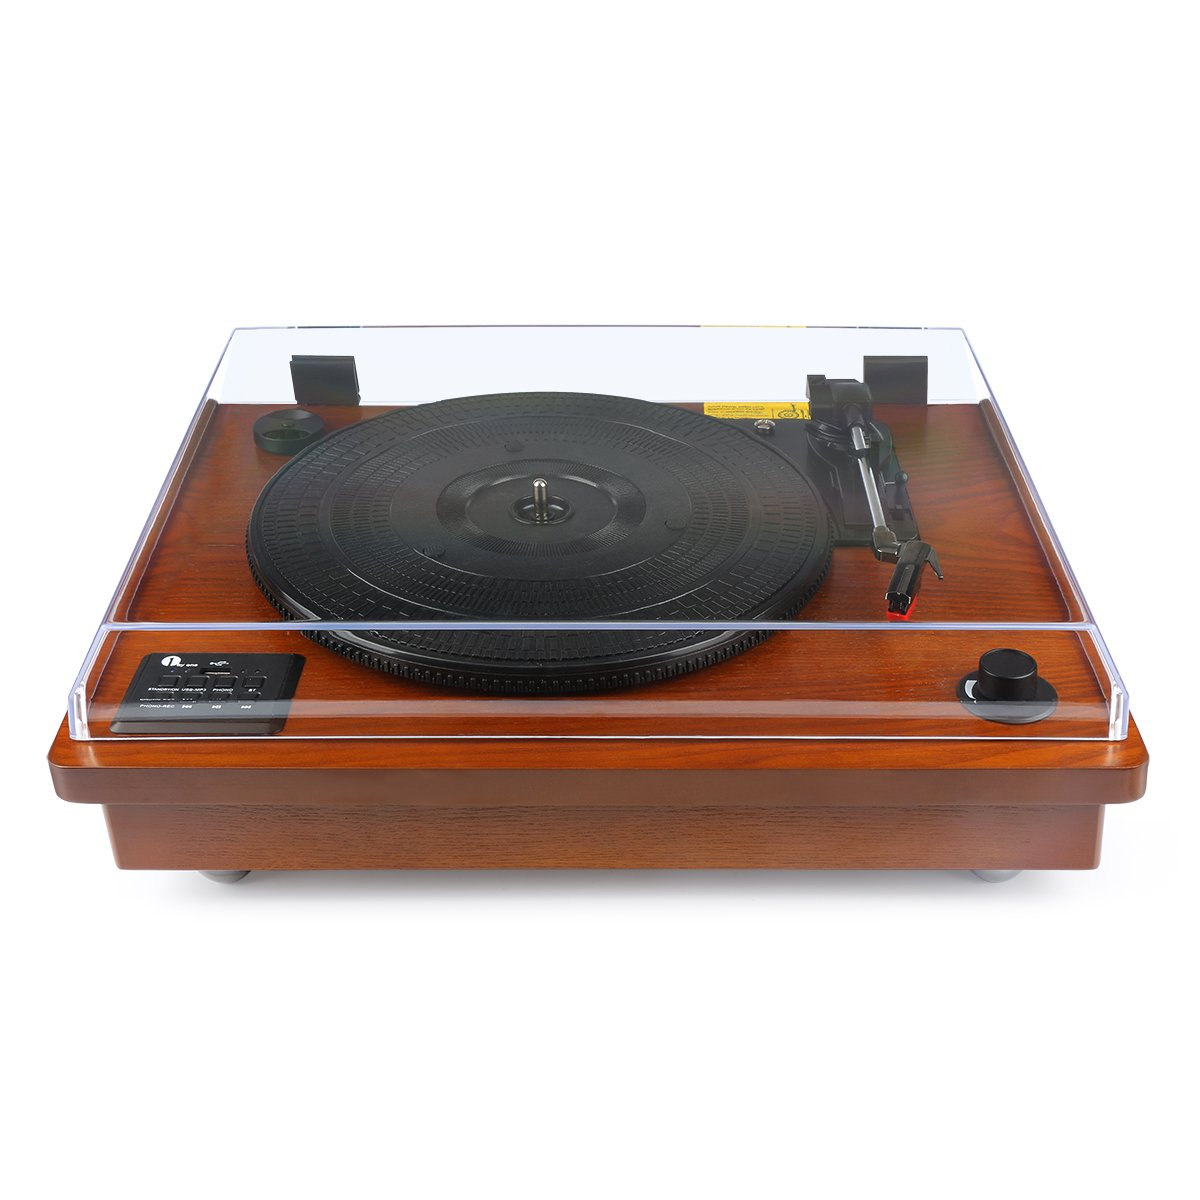 1byone Belt Driven Bluetooth Turntable with Built-in Stereo Speaker